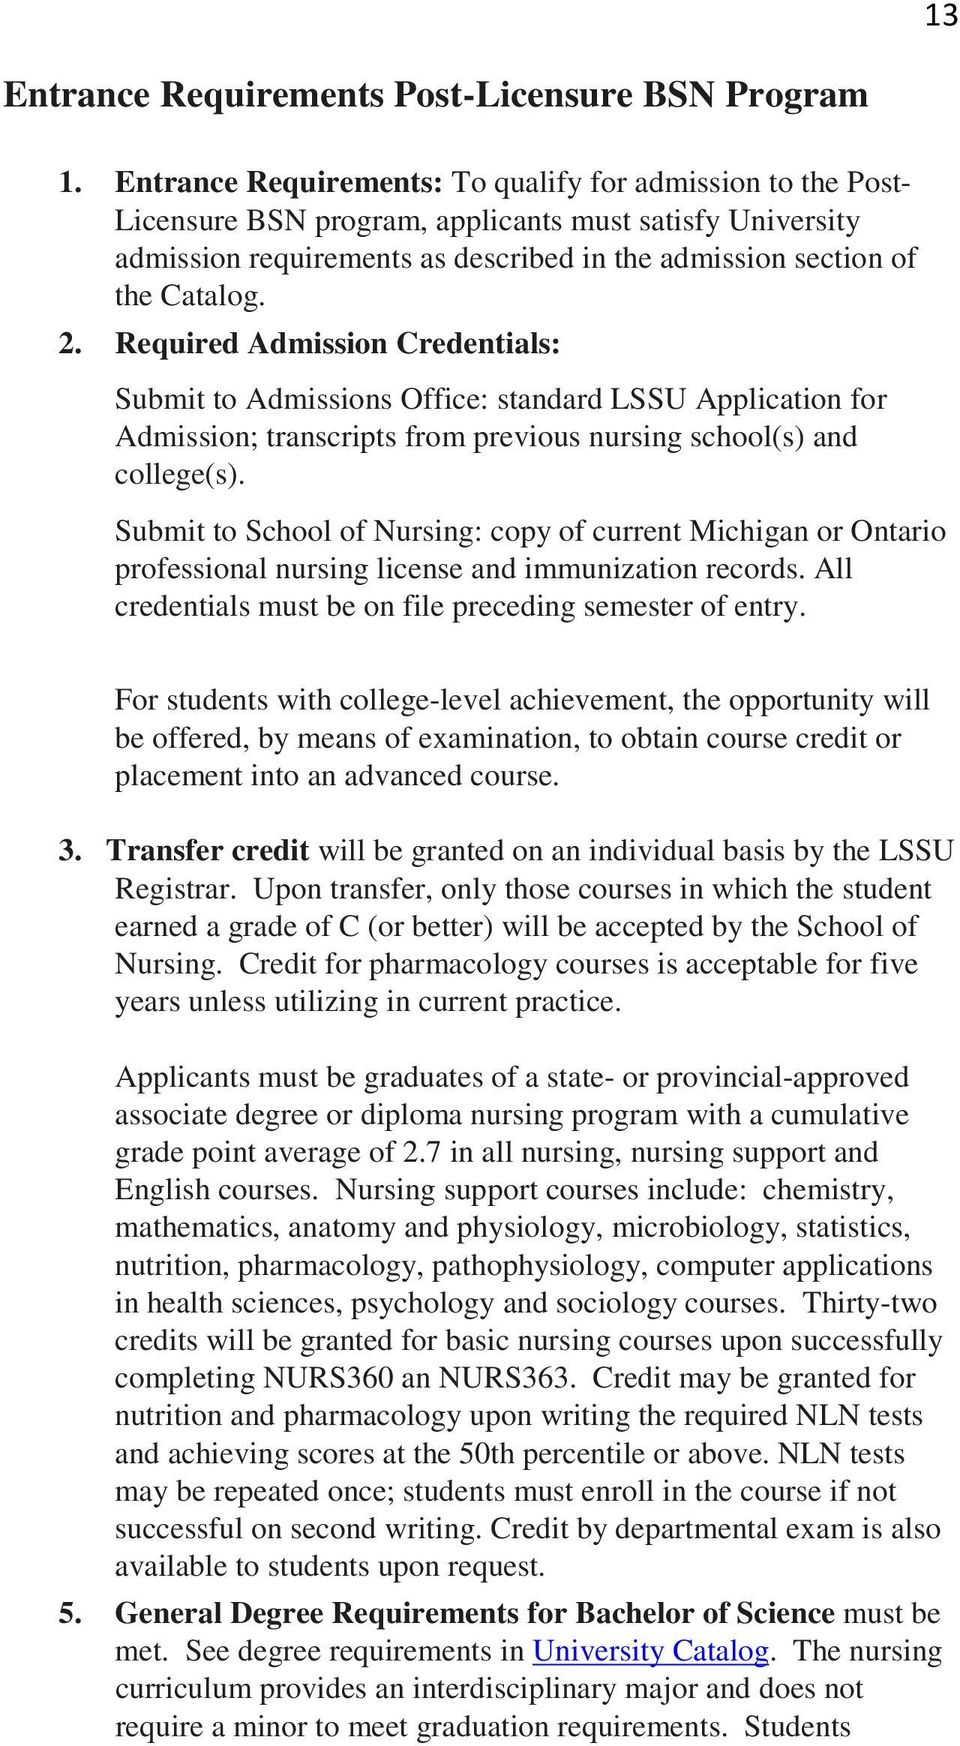 Required Admission Credentials: Submit to Admissions Office: standard LSSU Application for Admission; transcripts from previous nursing school(s) and college(s).